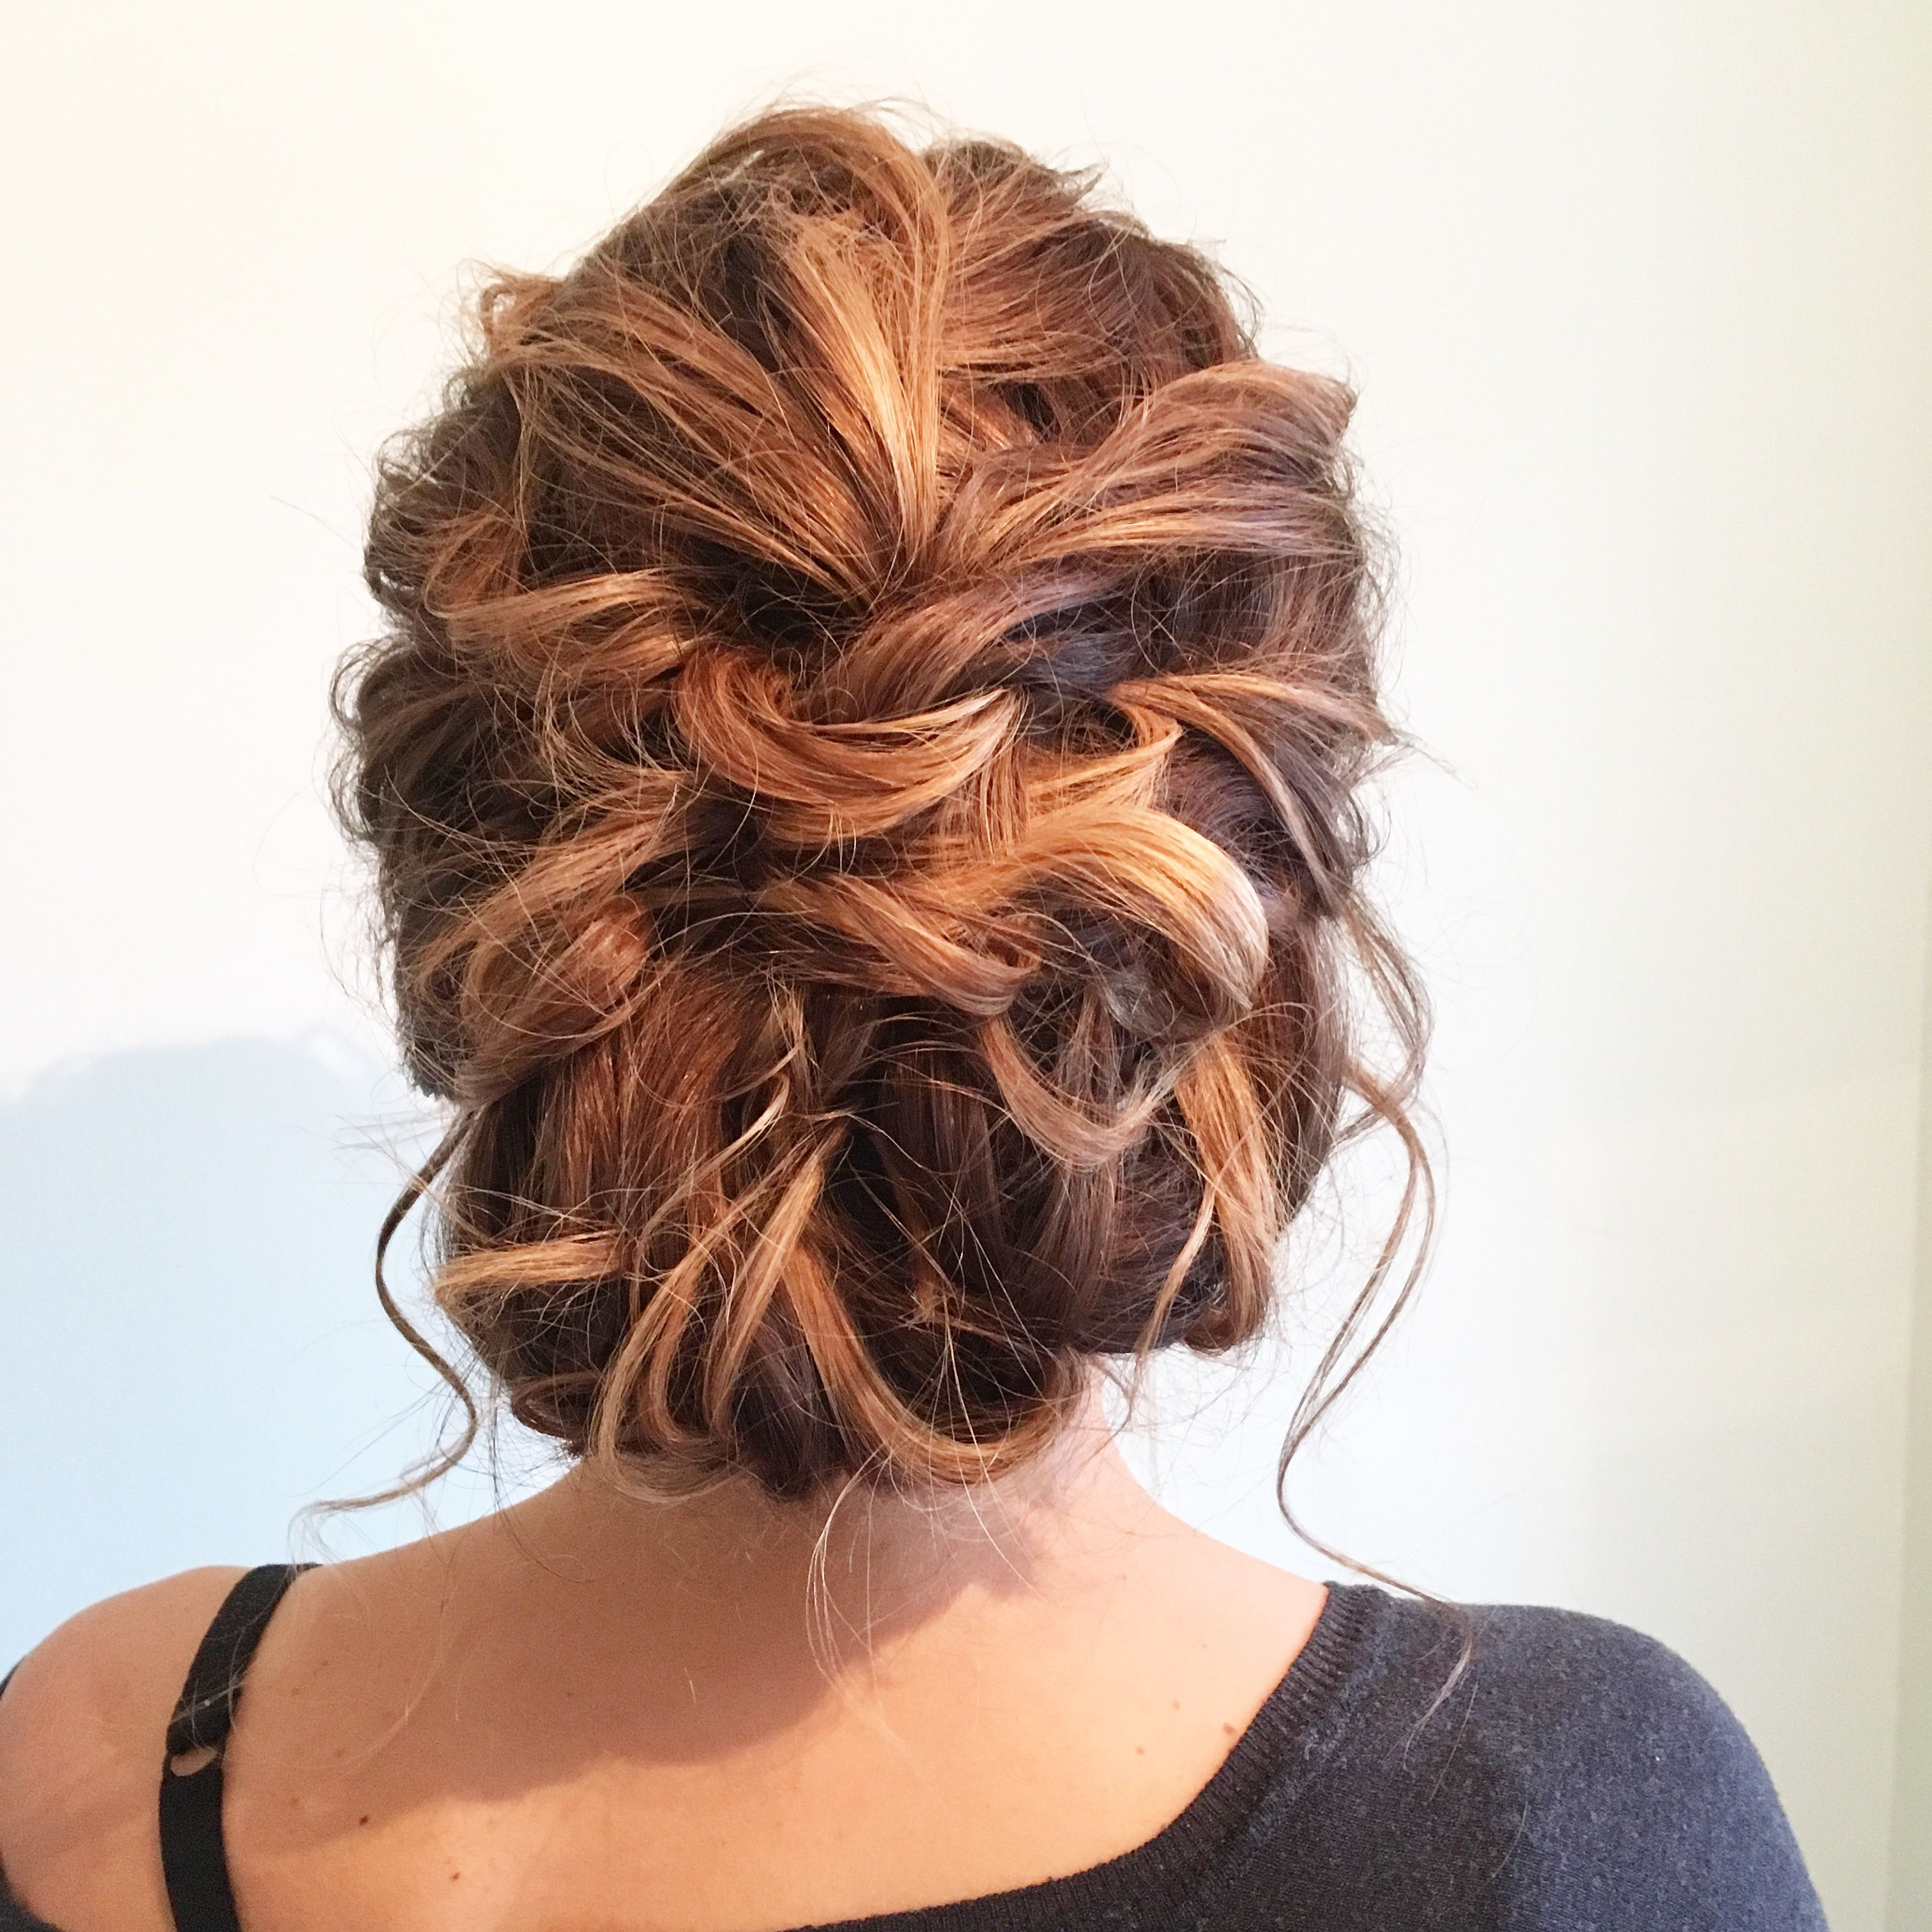 Low tousled textured bridal updo | Hair styles, Homecoming ...